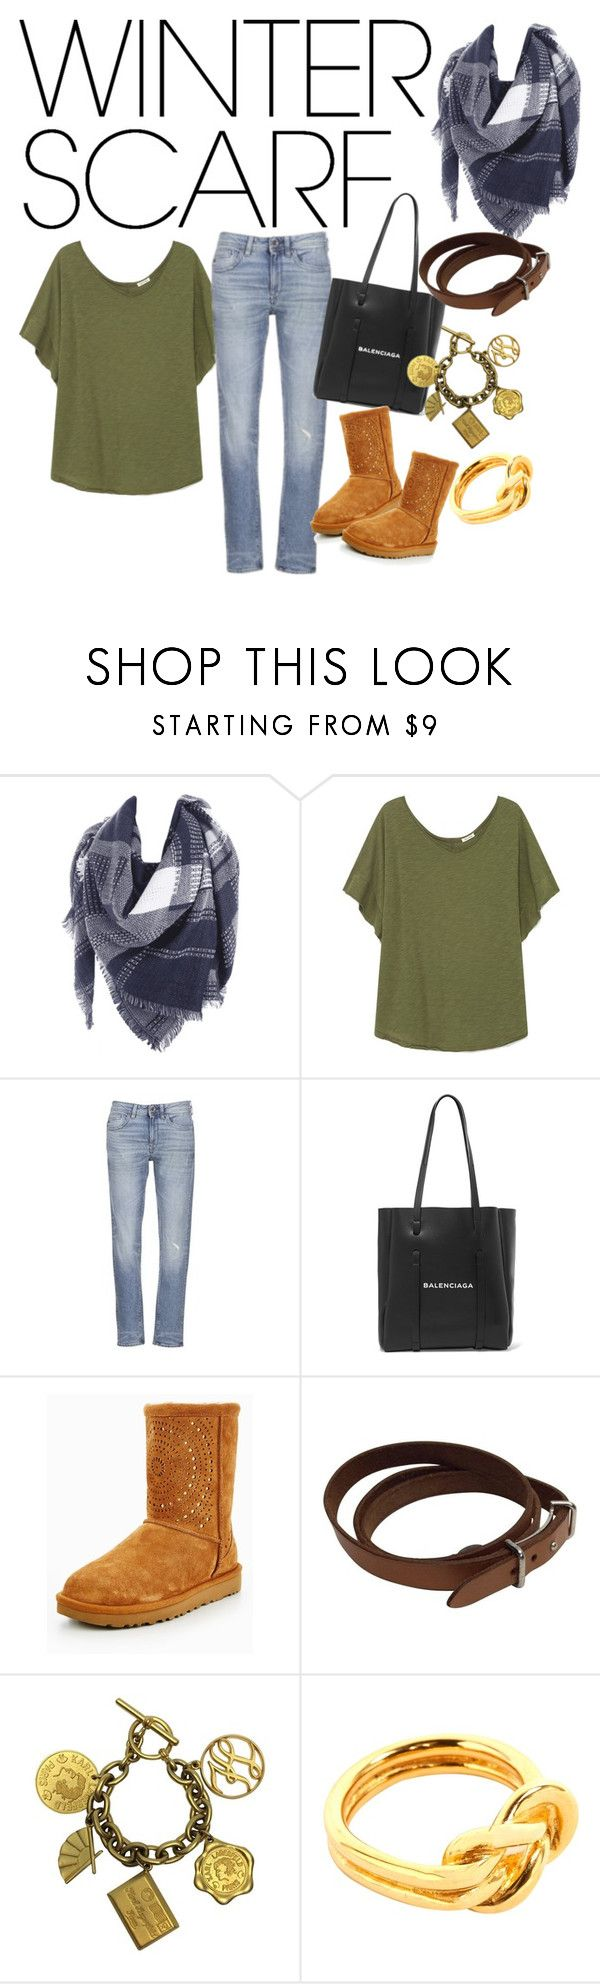 """Scarve"" by heidibartholdy ❤ liked on Polyvore featuring American Vintage, G-Star Raw, Balenciaga, UGG, Hermès and Karl Lagerfeld"